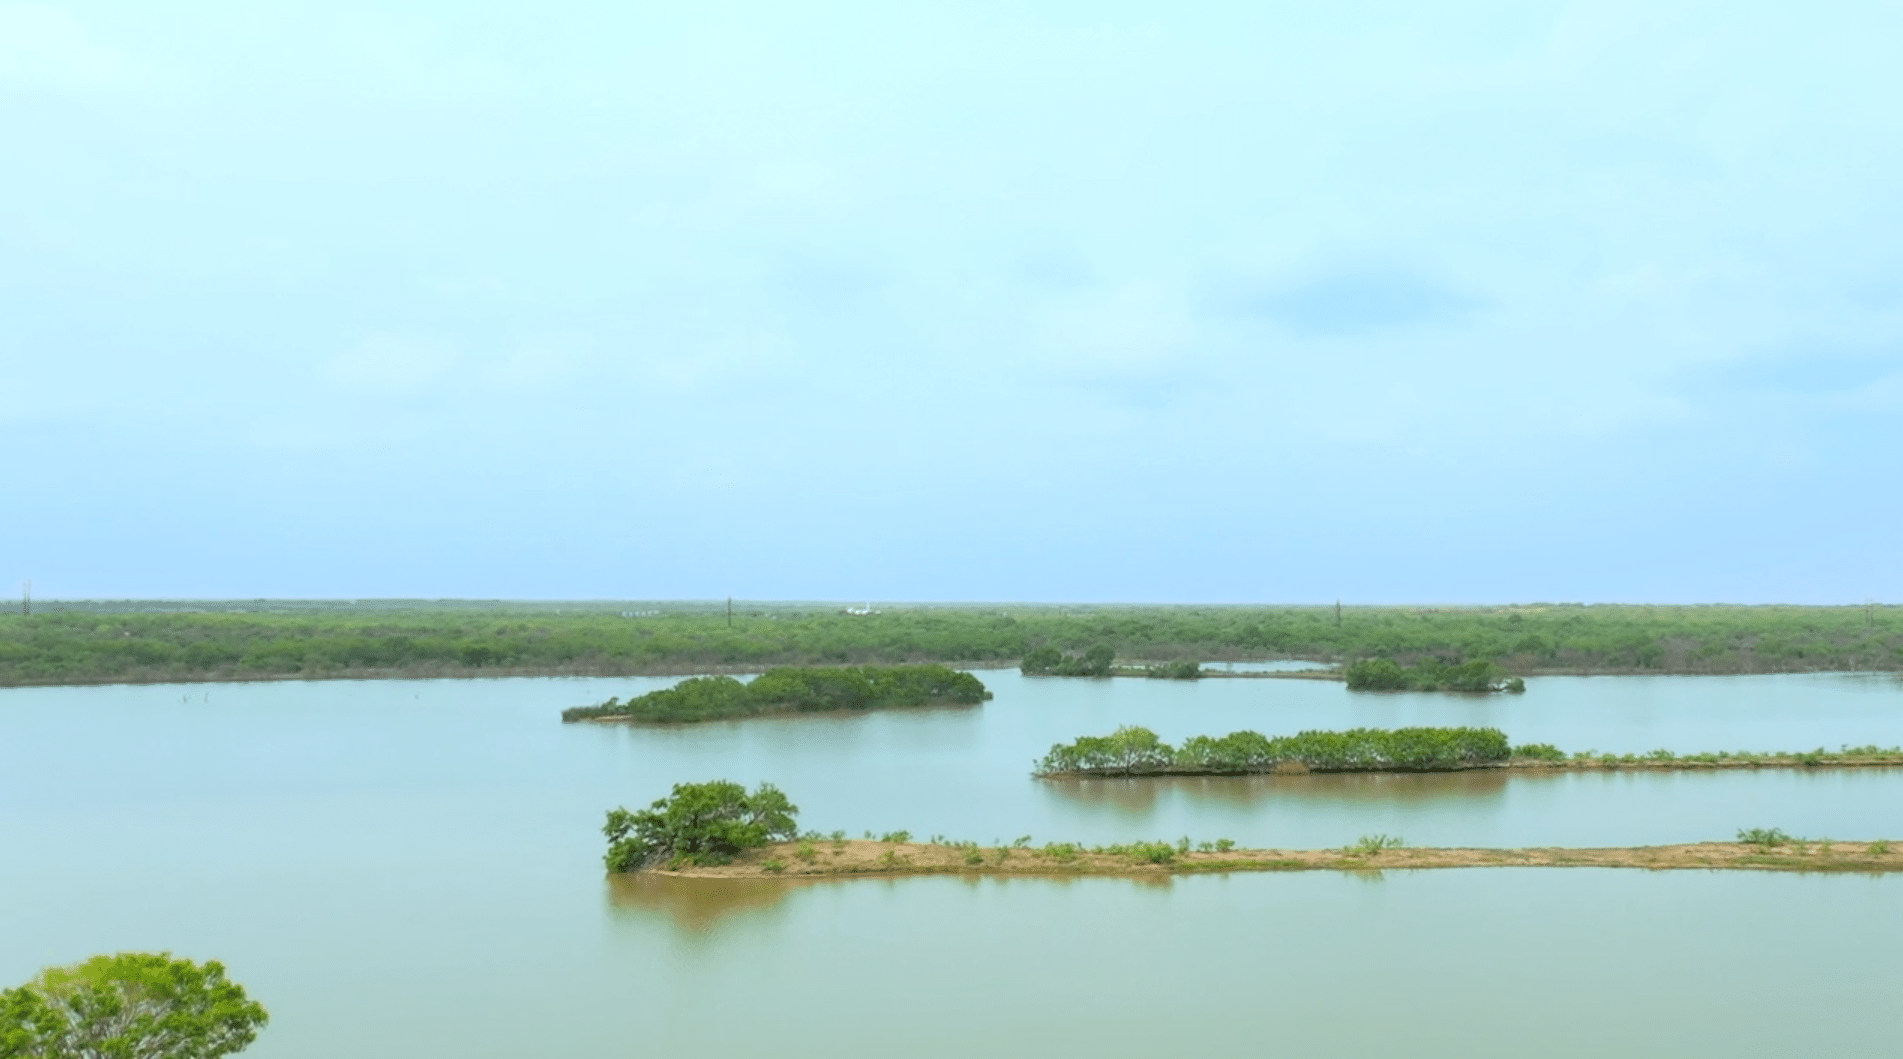 Landscape of vast wetlands with numerous small islands.